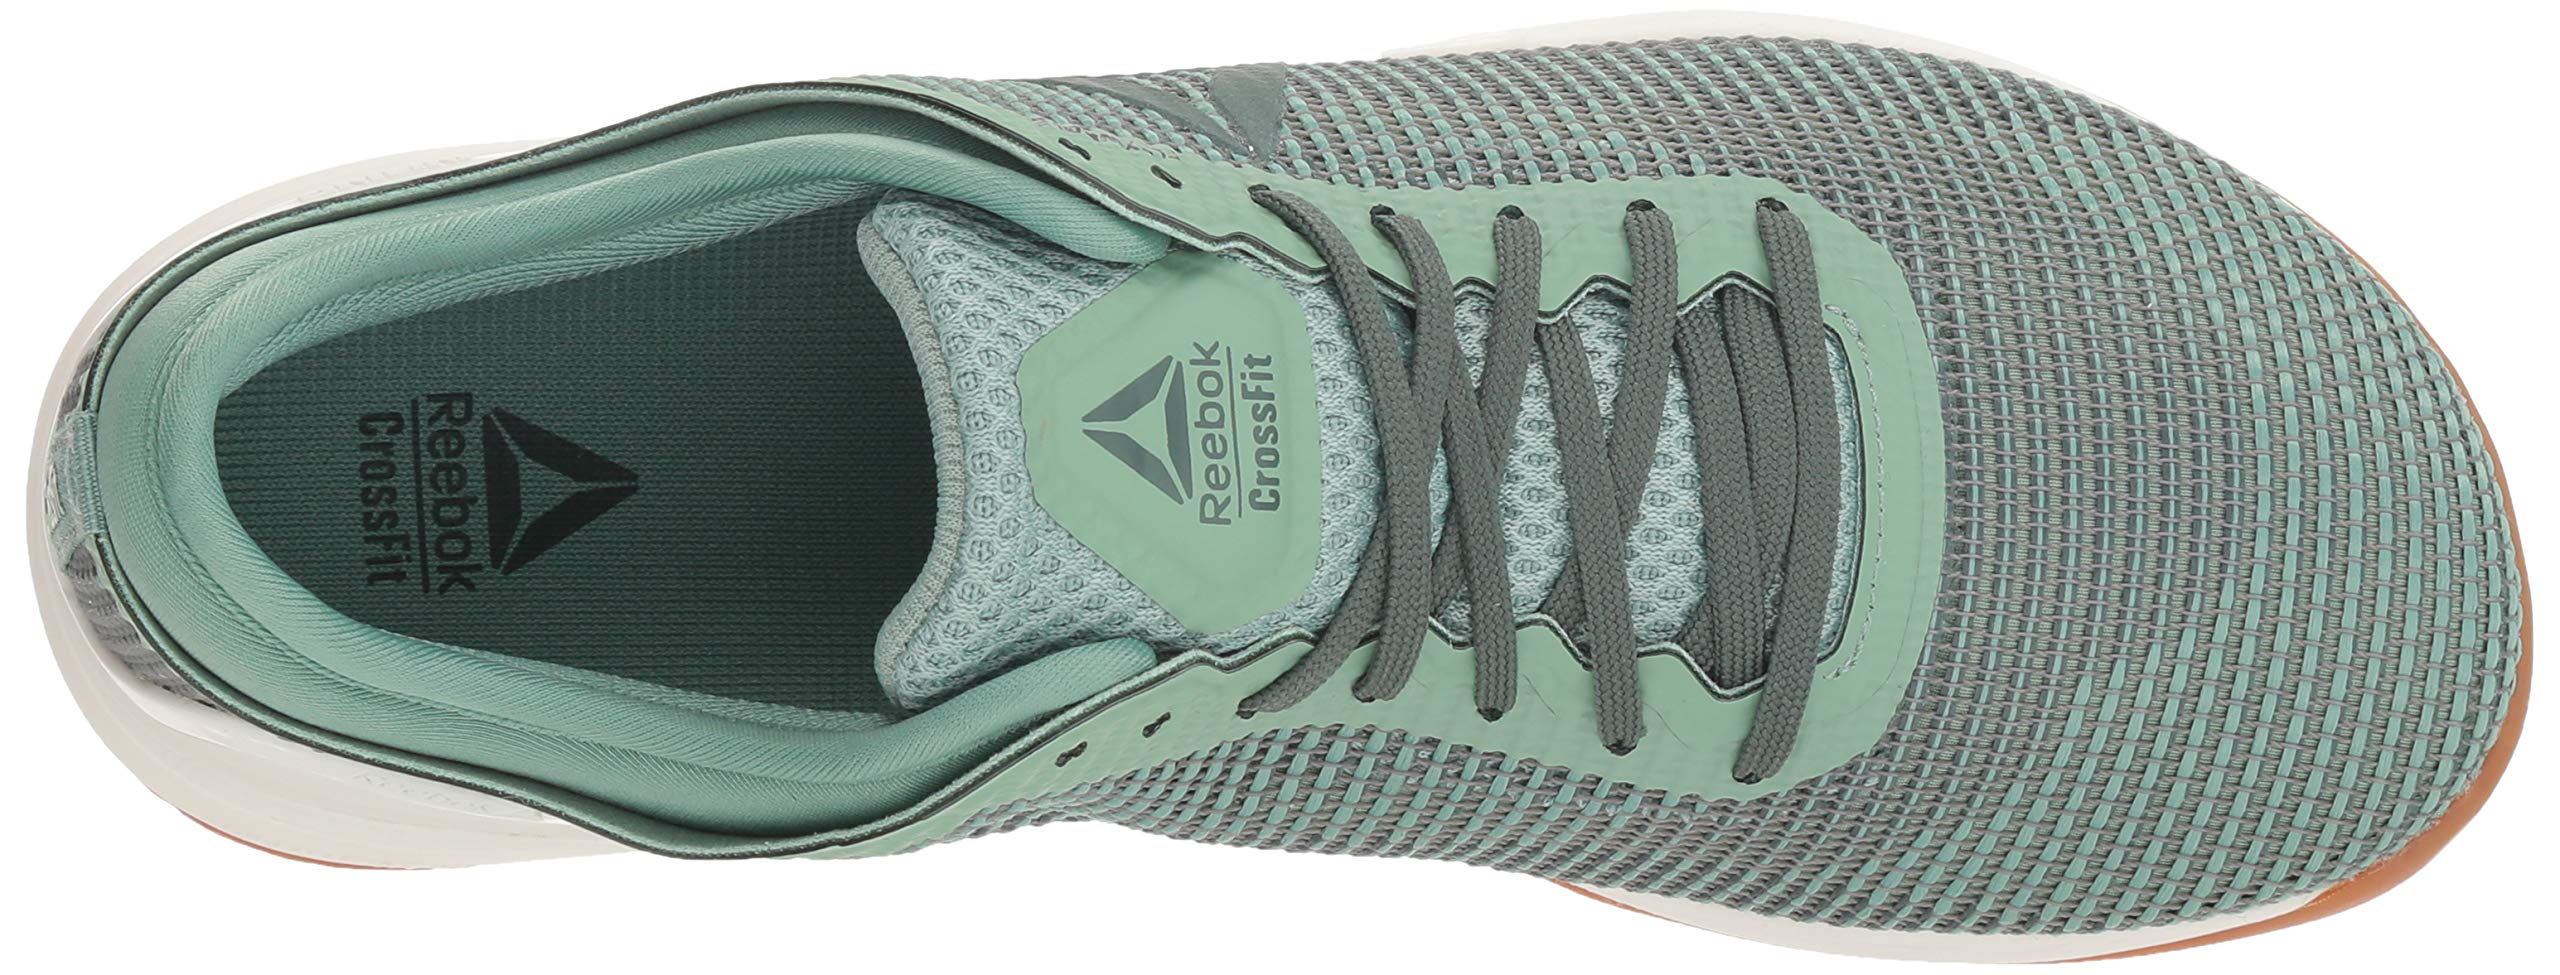 Reebok Women's CROSSFIT Nano 8.0 Flexweave Cross Trainer, industrial green/chalk grey, 5 M US by Reebok (Image #8)